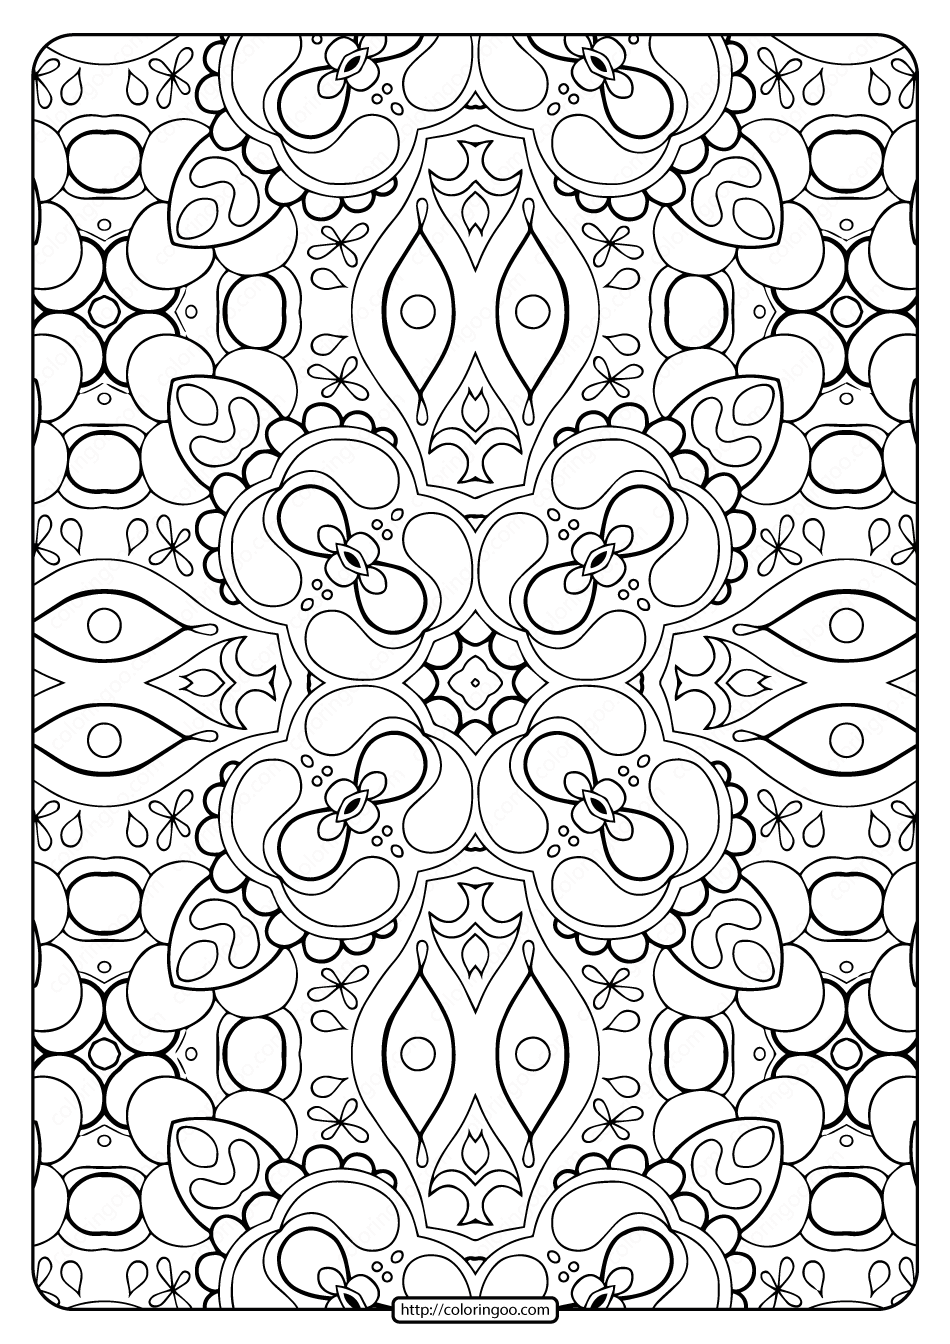 coloring templates for adults free printable abstract coloring pages for adults for coloring templates adults